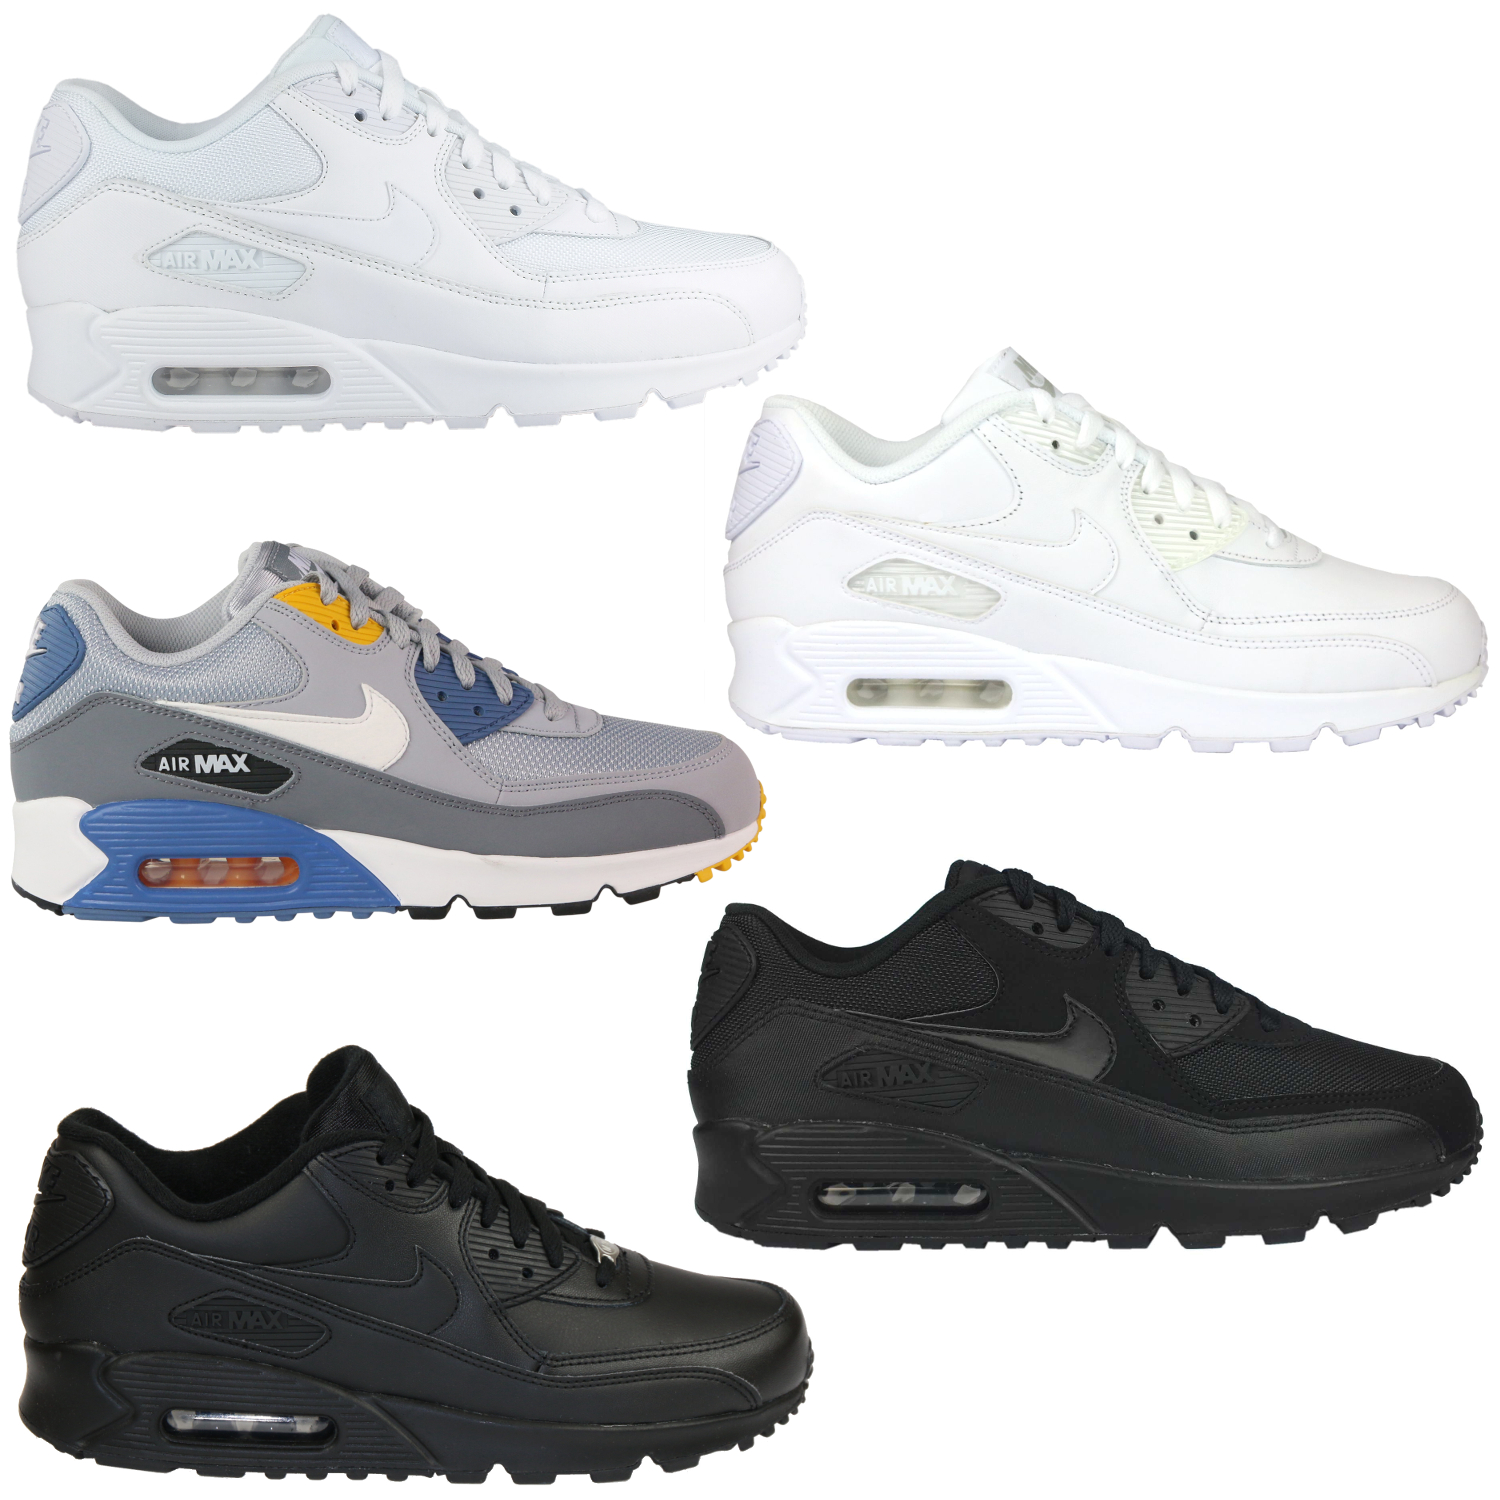 Details about Nike Air Max 90 Essential Shoes Sneaker Mens Real Leather Grey Blue show original title